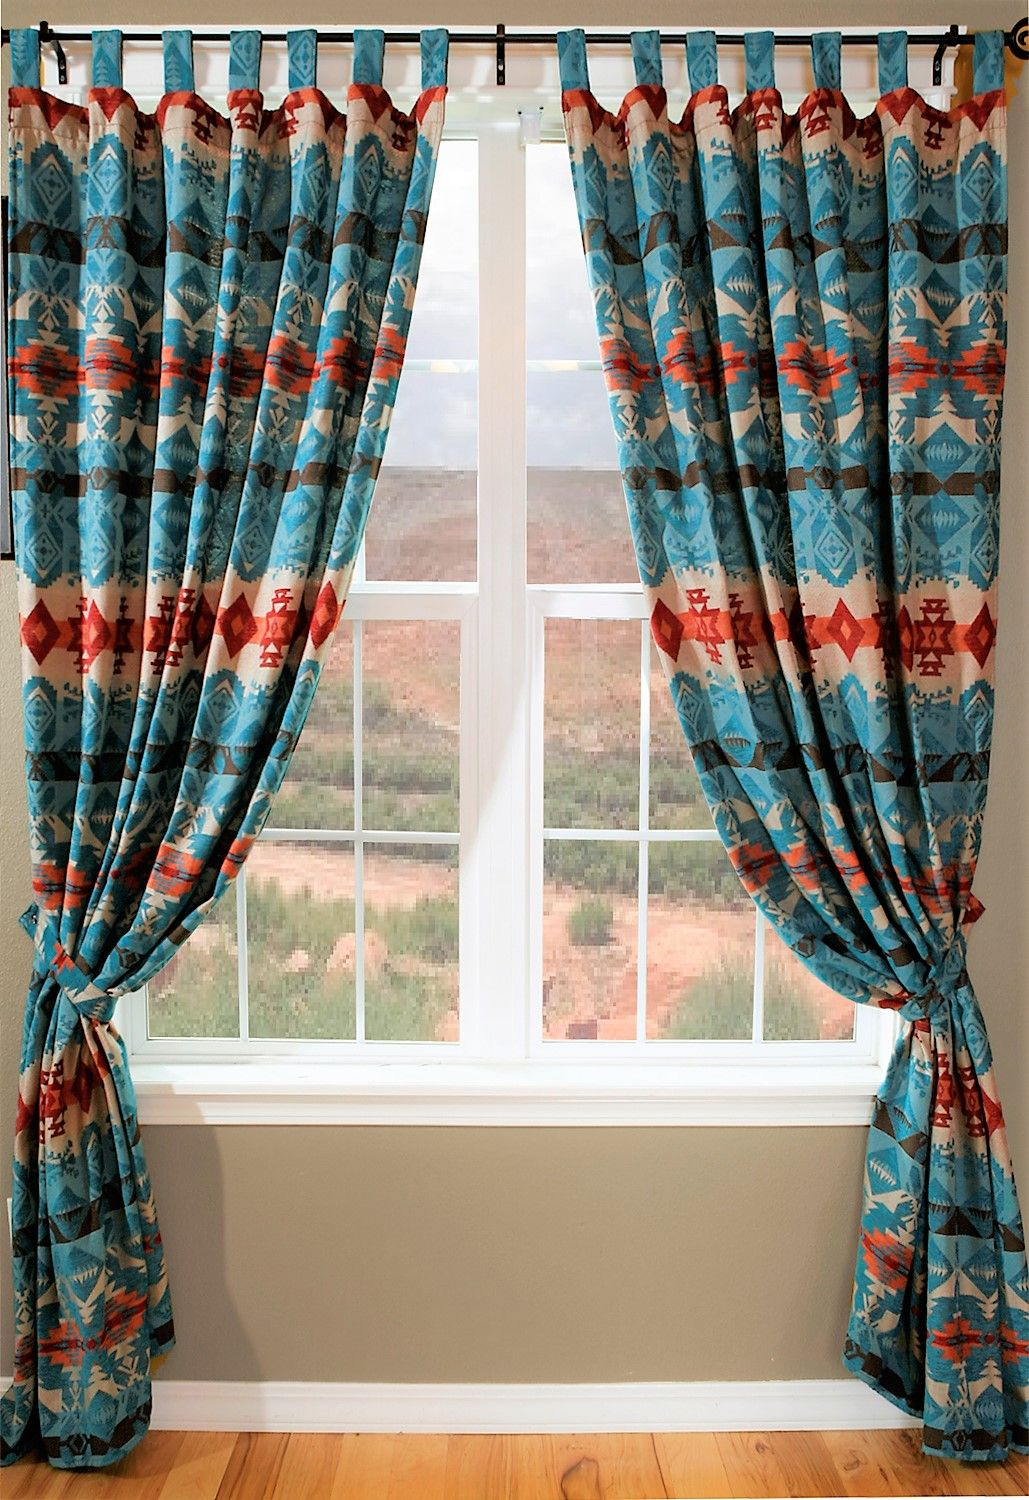 The Turquoise Trails Southwest Tab Top Curtains Features A Vibrant Pallet In Shades Of